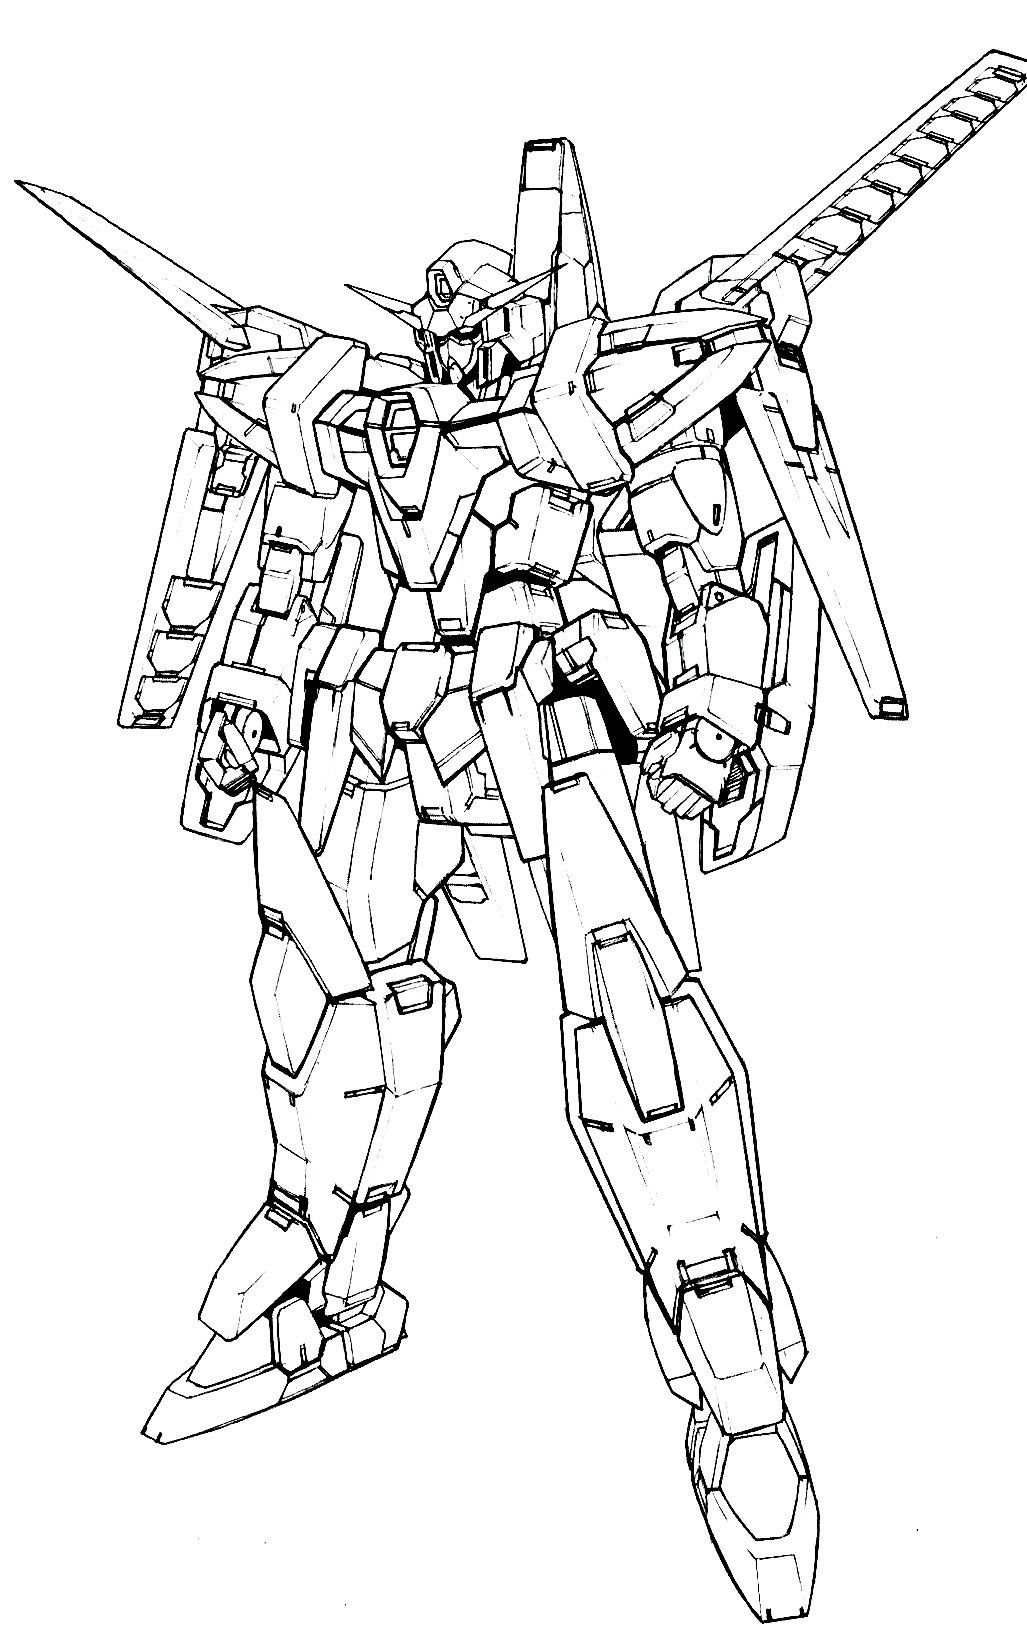 Gundam Coloring Pages Best Coloring Pages For Kids Coloring Pages Transformers Coloring Pages Gundam Wing